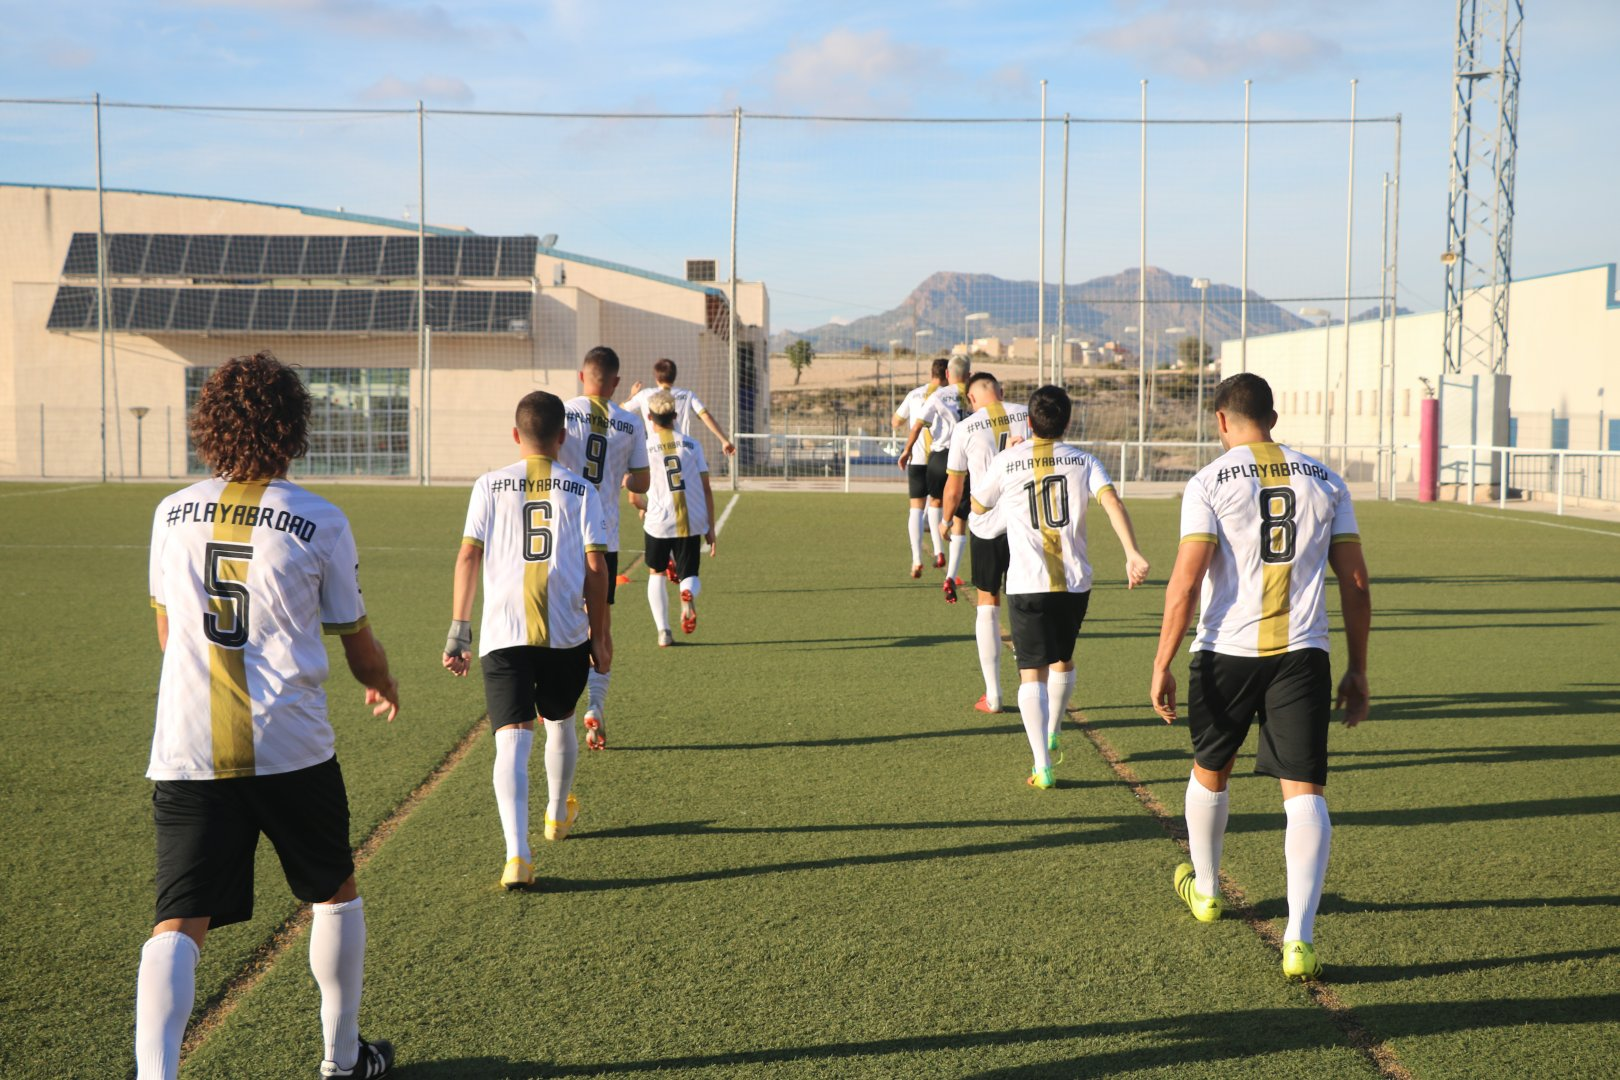 Sign up to play football abroad in Spain now